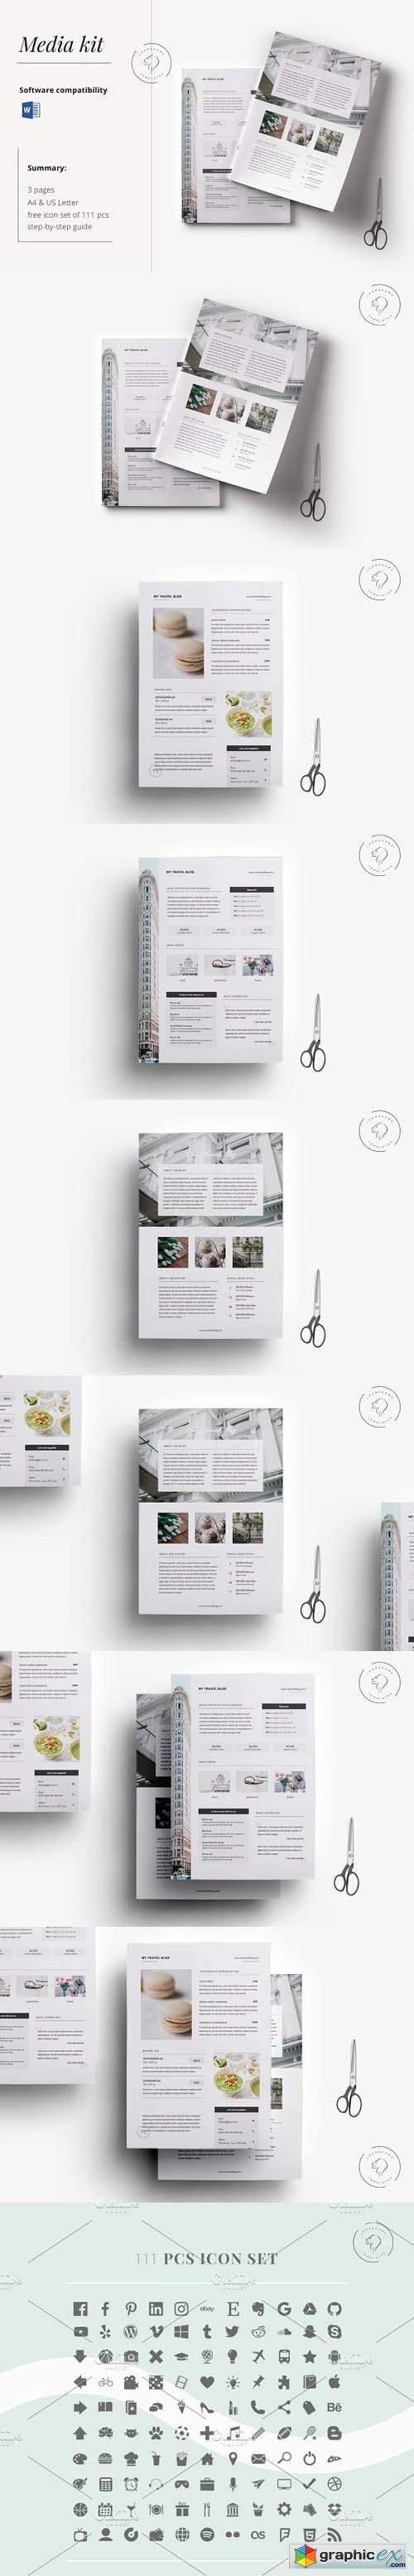 Press Kit Template for Bloggers